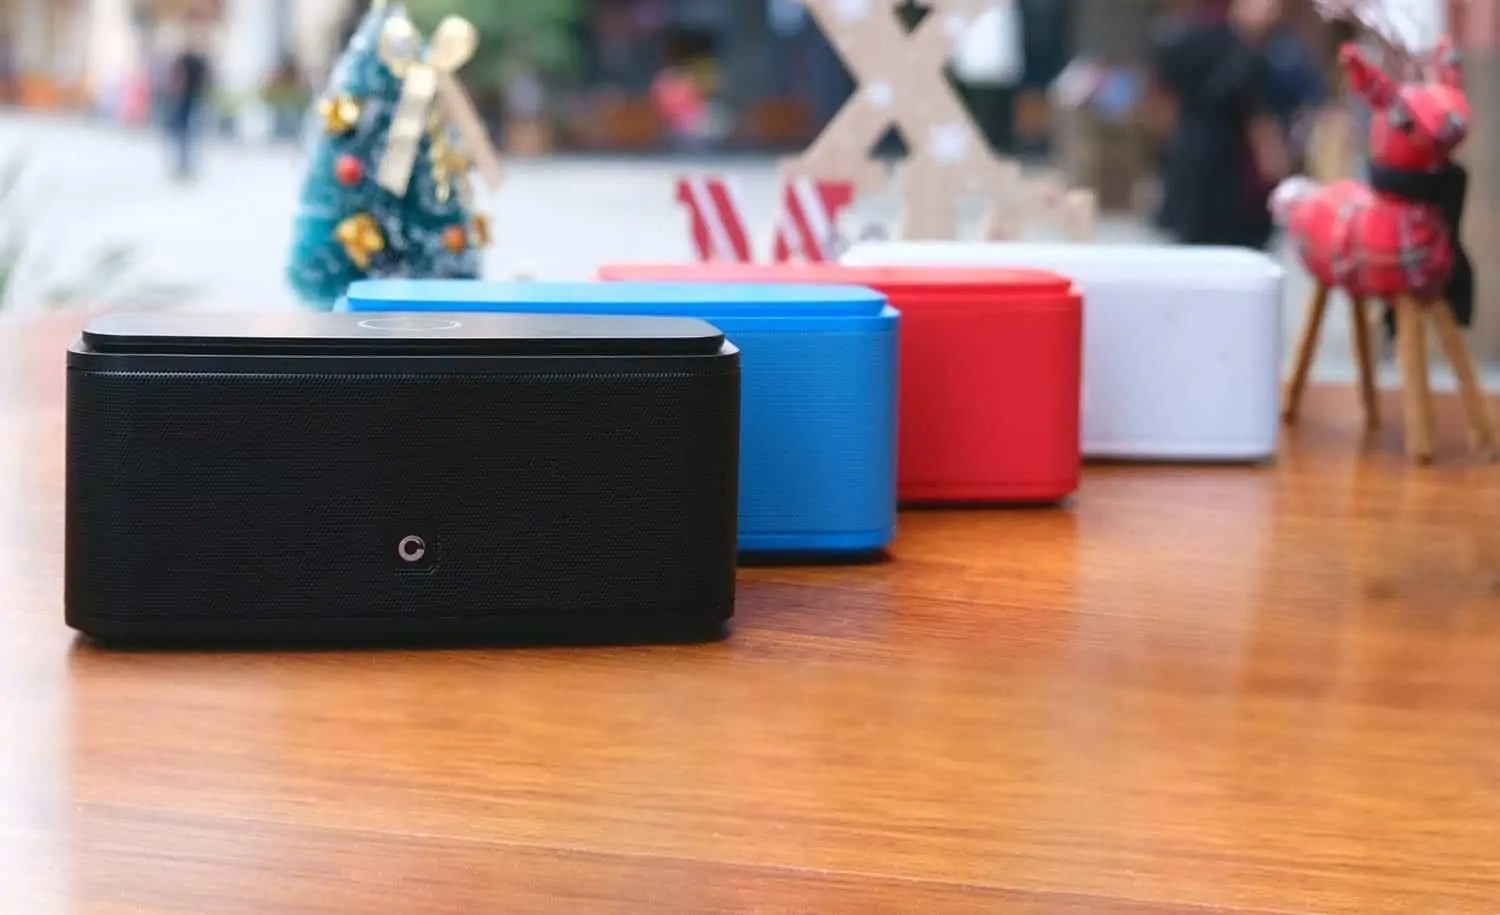 4a90fd4cefe48d The 12 Loudest Bluetooth Speakers of 2019 - Outeraudio